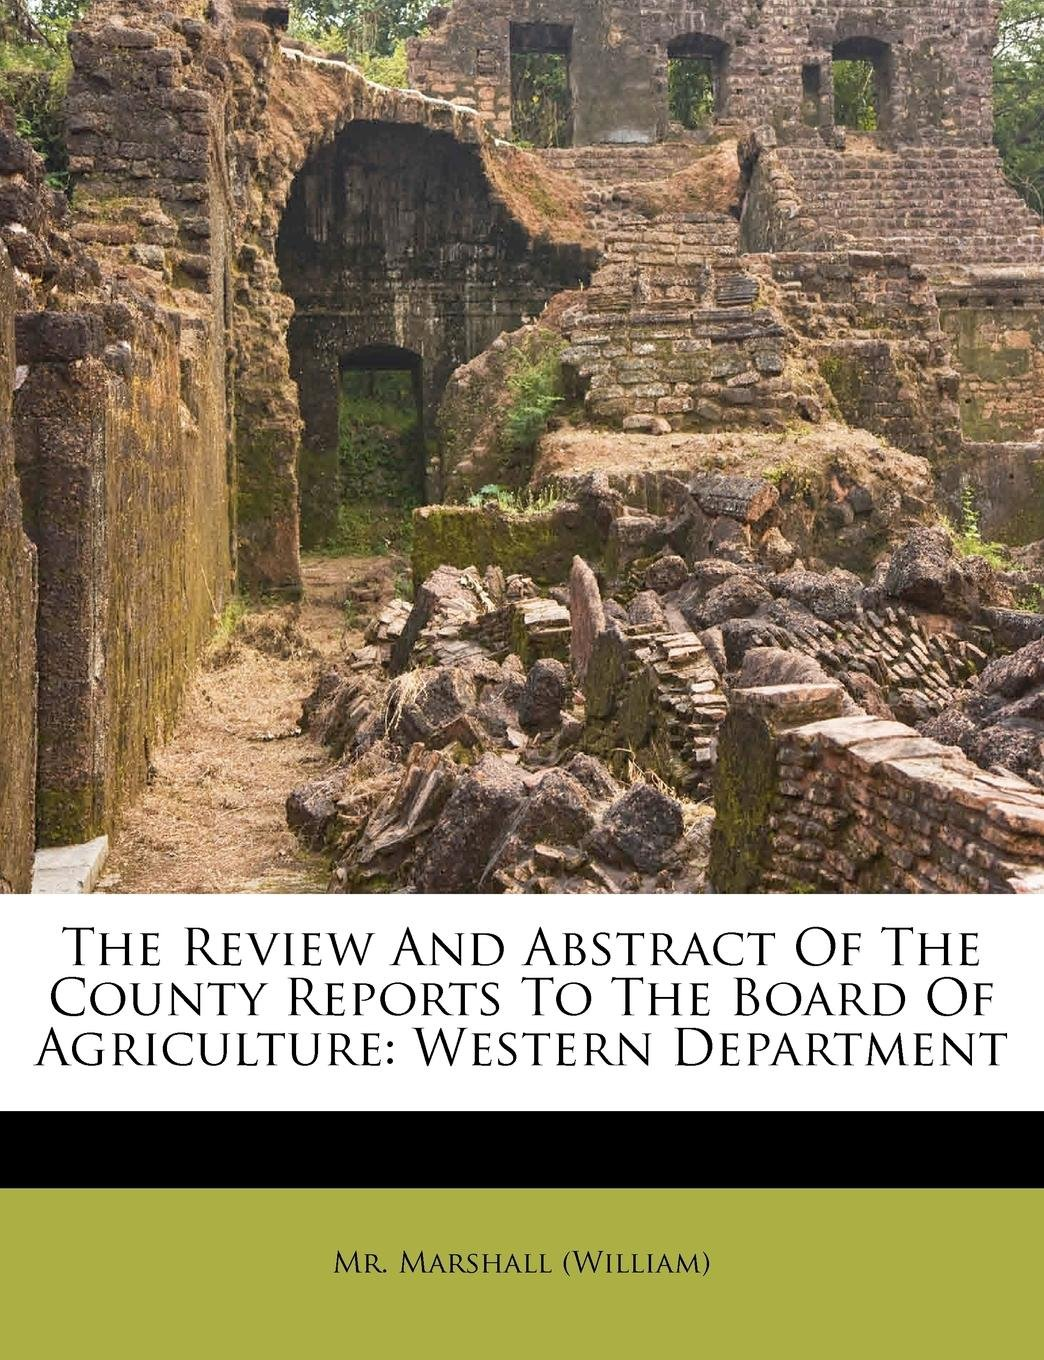 Download The Review And Abstract Of The County Reports To The Board Of Agriculture: Western Department pdf